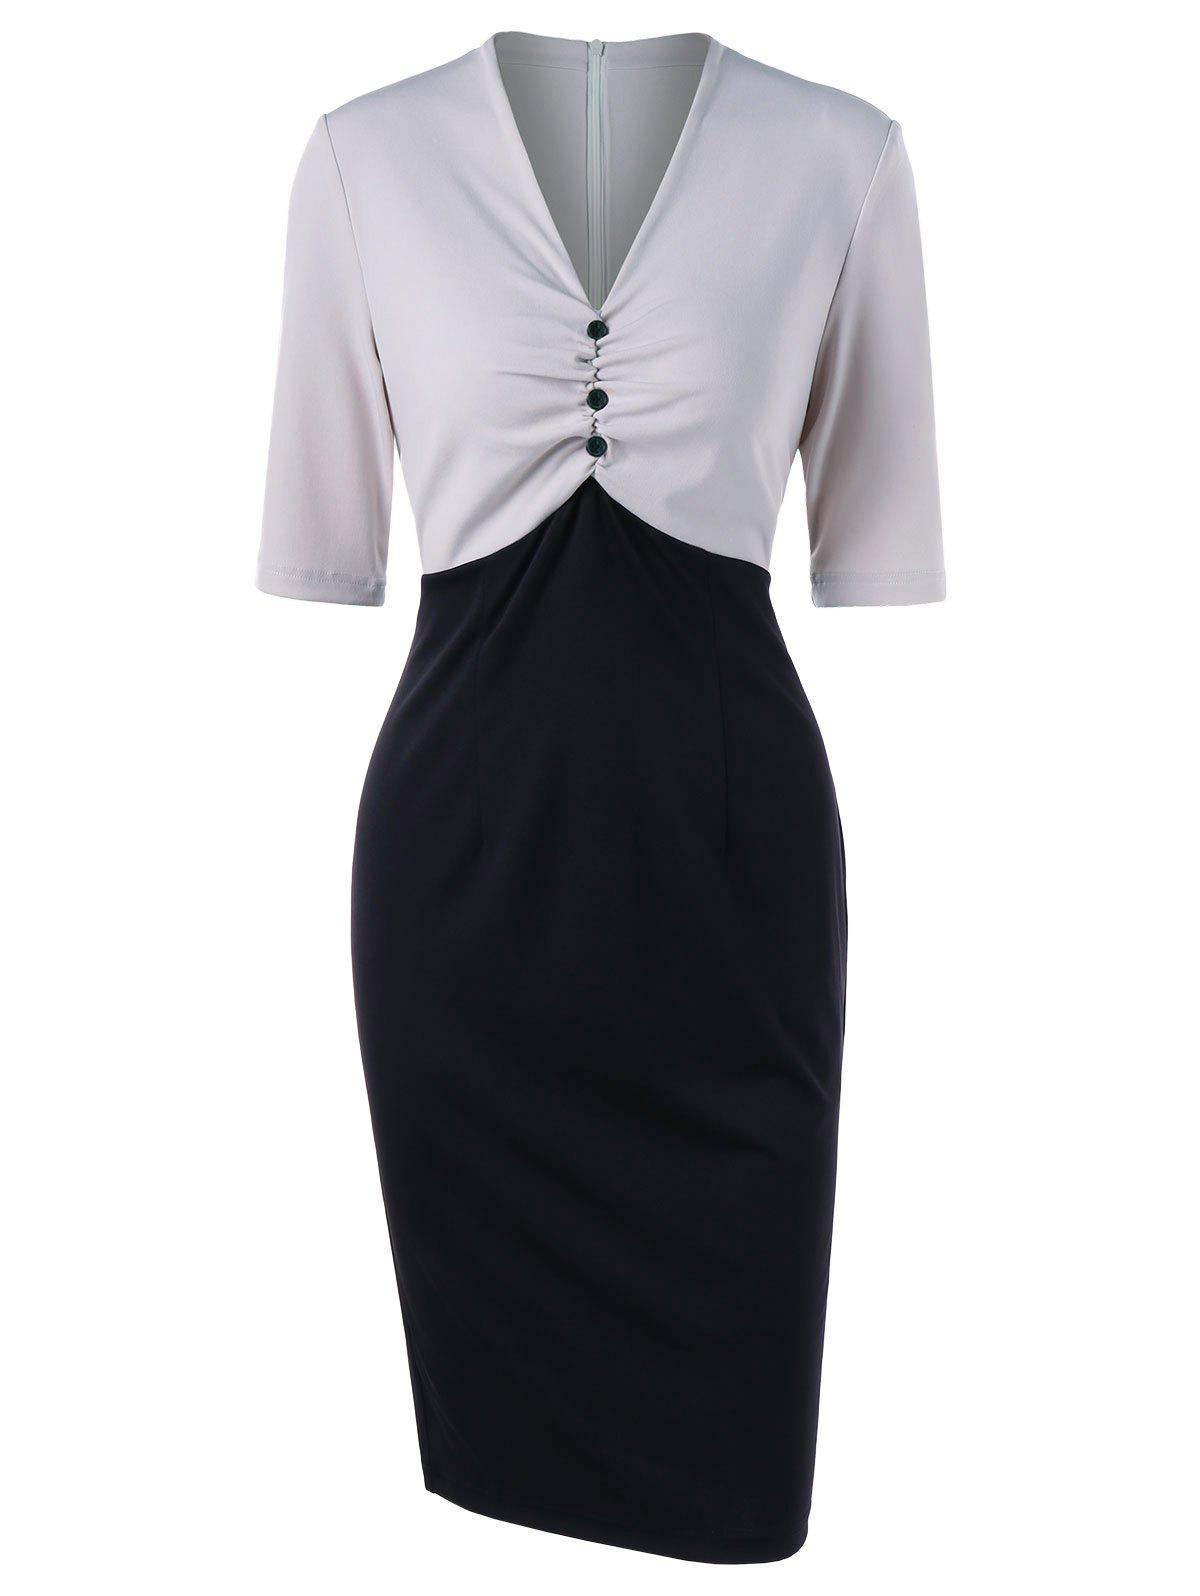 Low Cut Color Block Bodycon Dress - LIGHT GRAY L